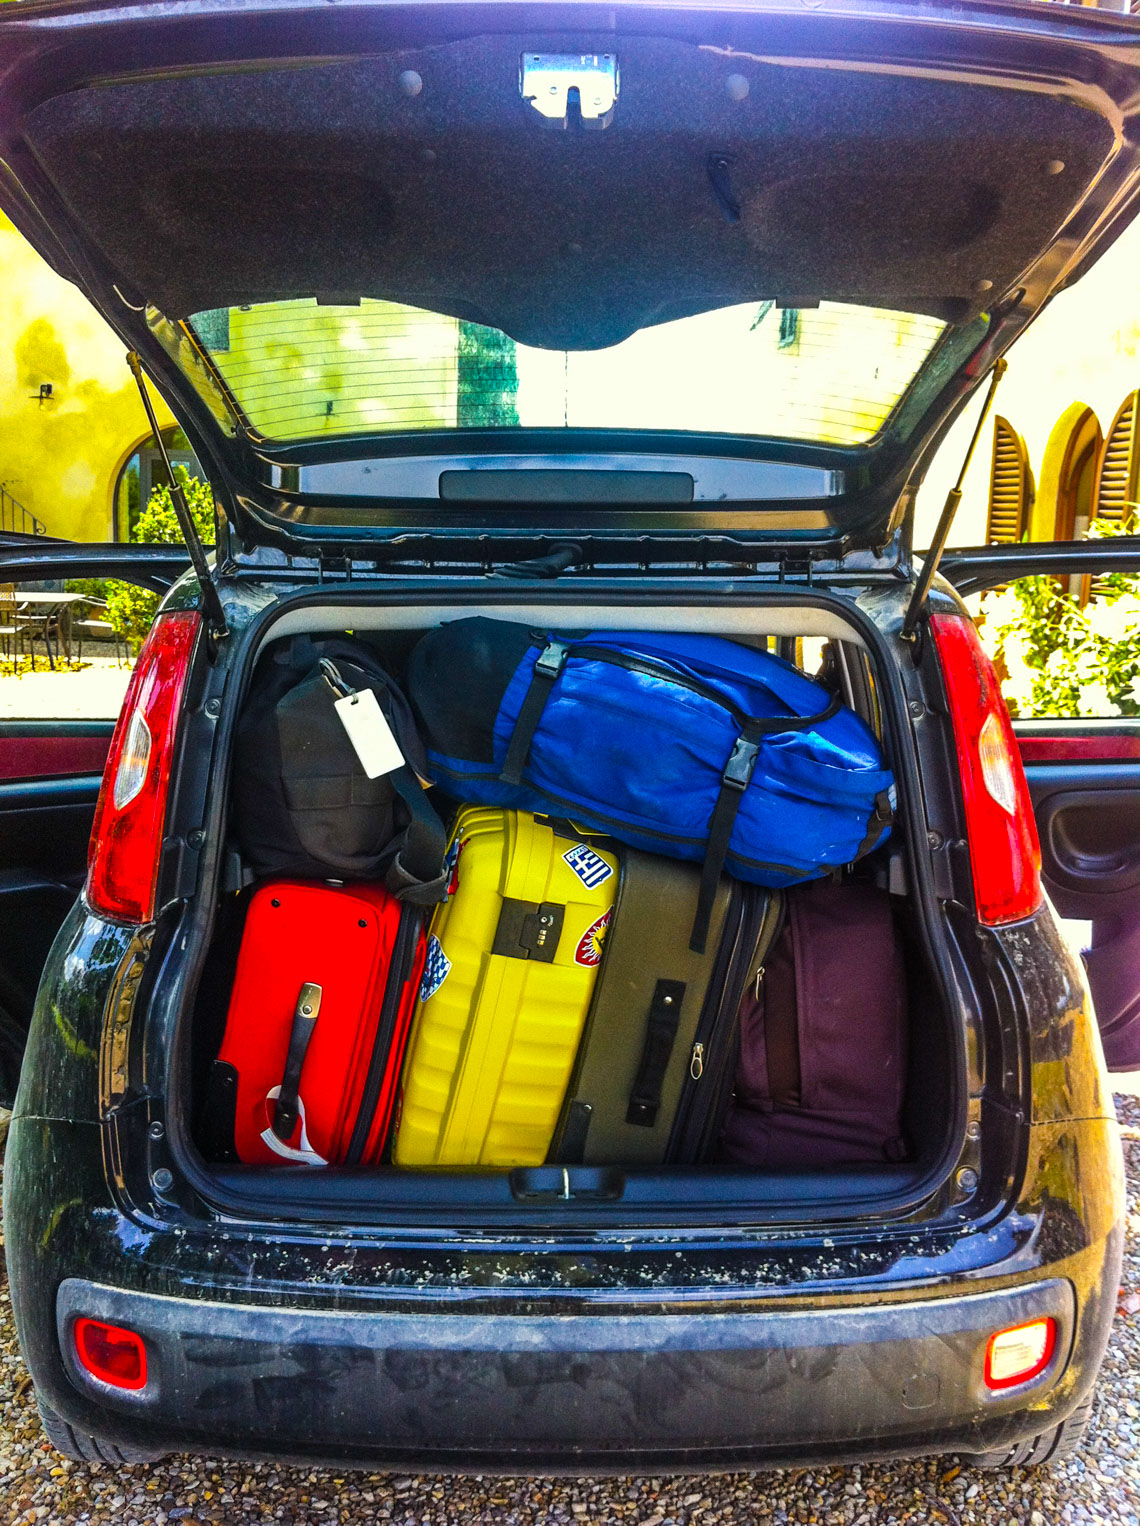 Rear view of Car Loaded with Luggage